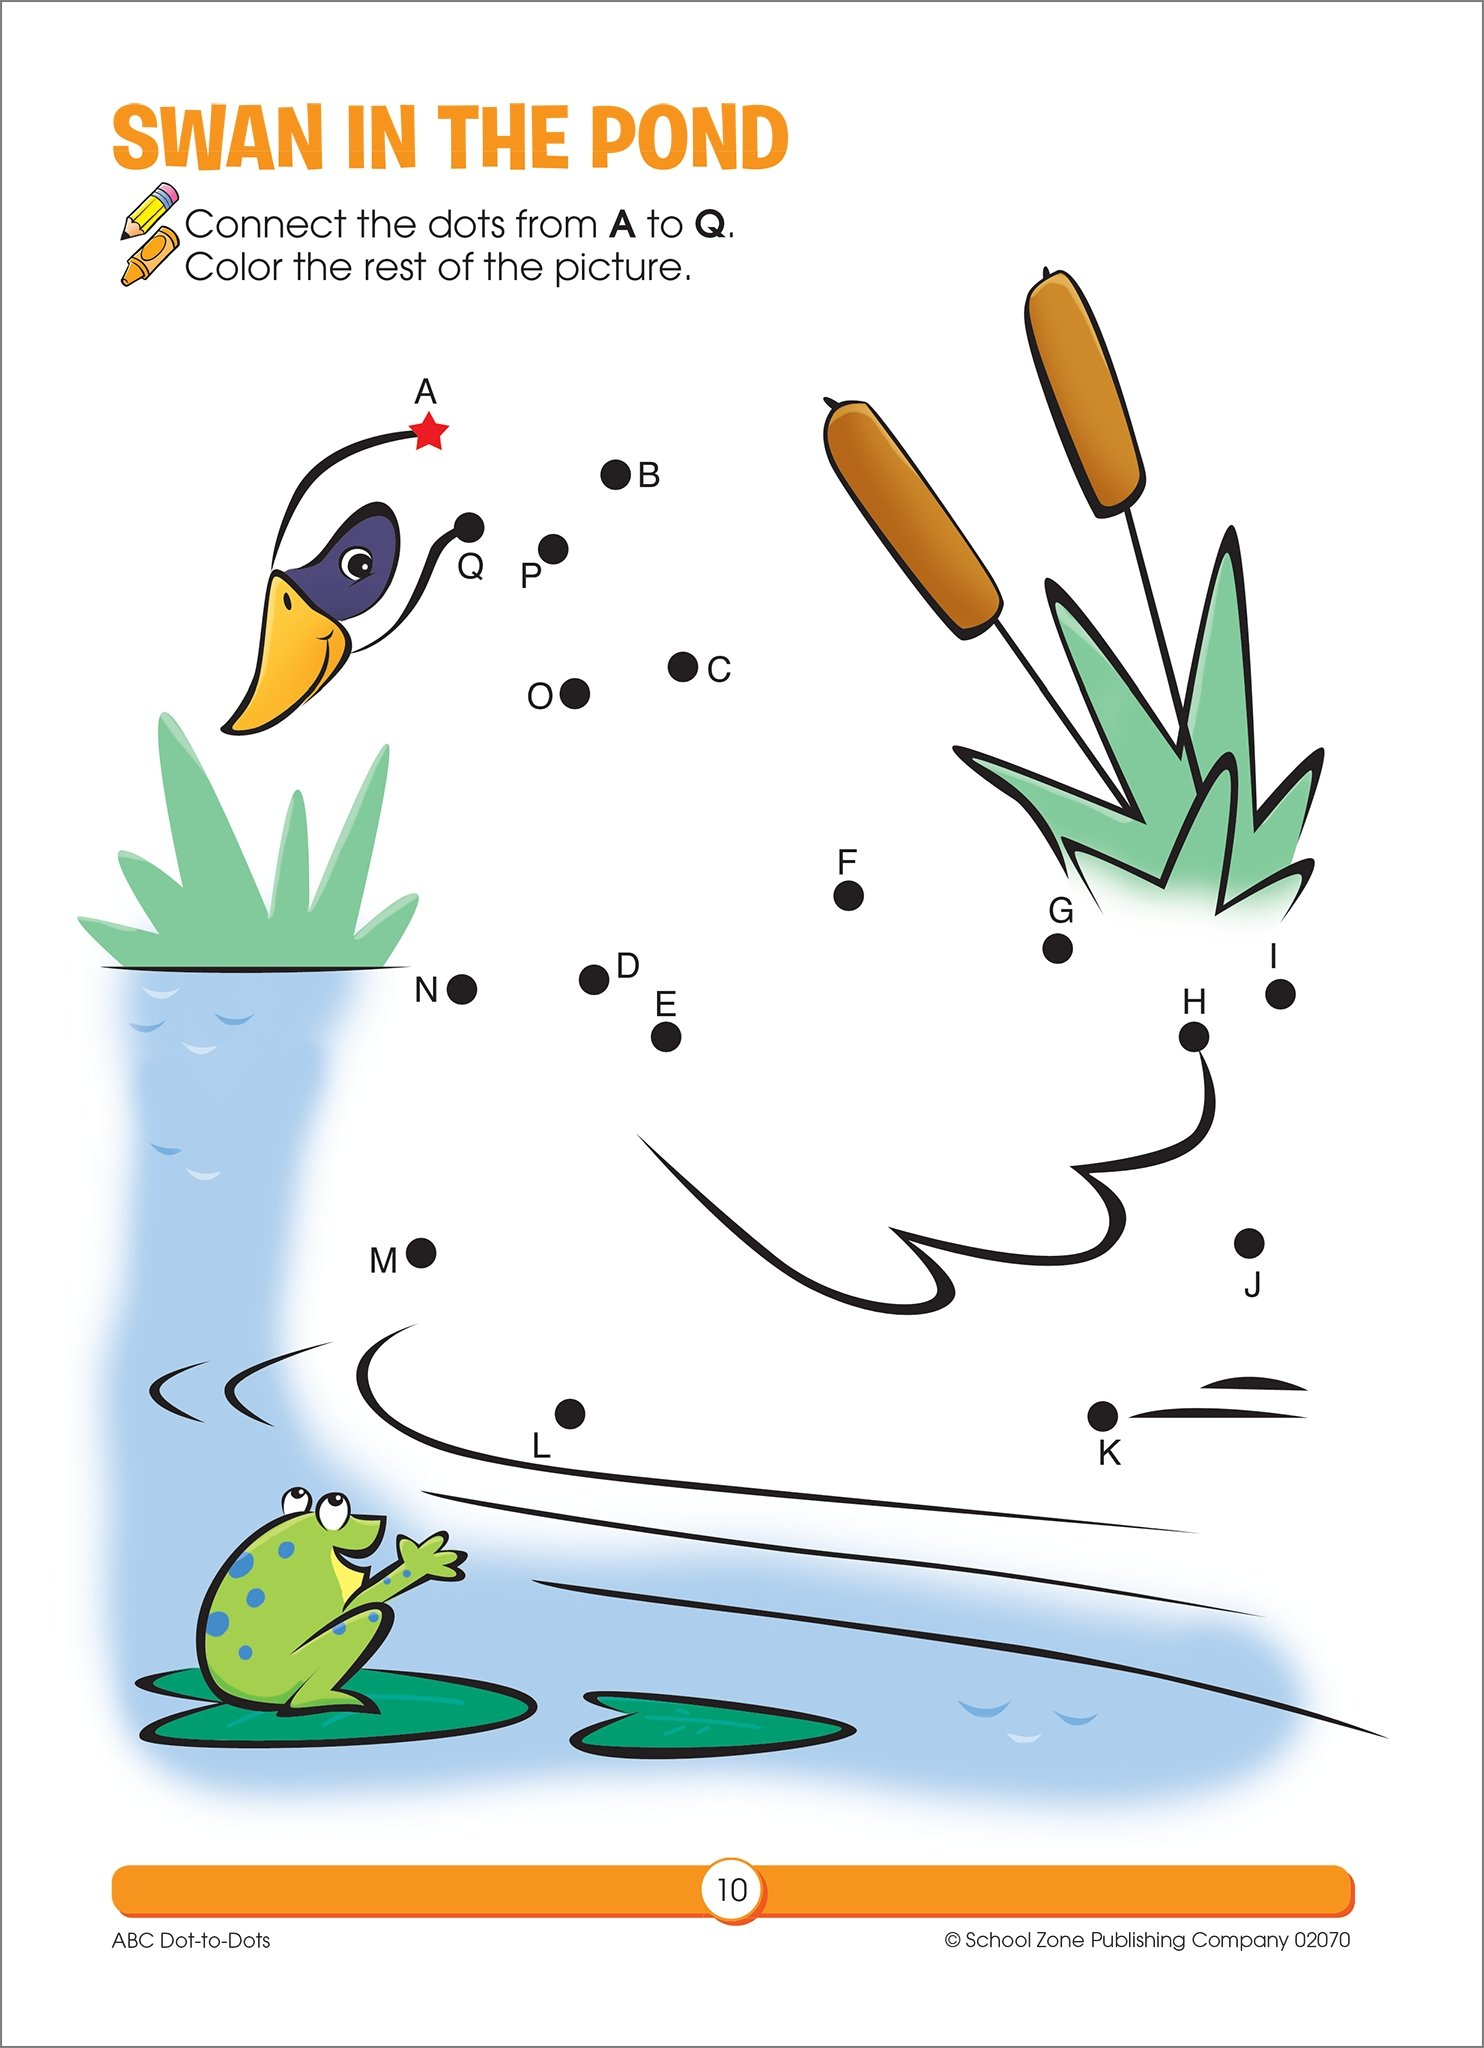 SCHOOL ZONE - ABC Dot-to-Dots Workbook, Ages 3 to 5, Get Ready!™, Alphabet, Alphabetical Order, Letters, Sequencing, Fine Motor Skills, Illustrations and More! by School Zone Publishing (Image #4)